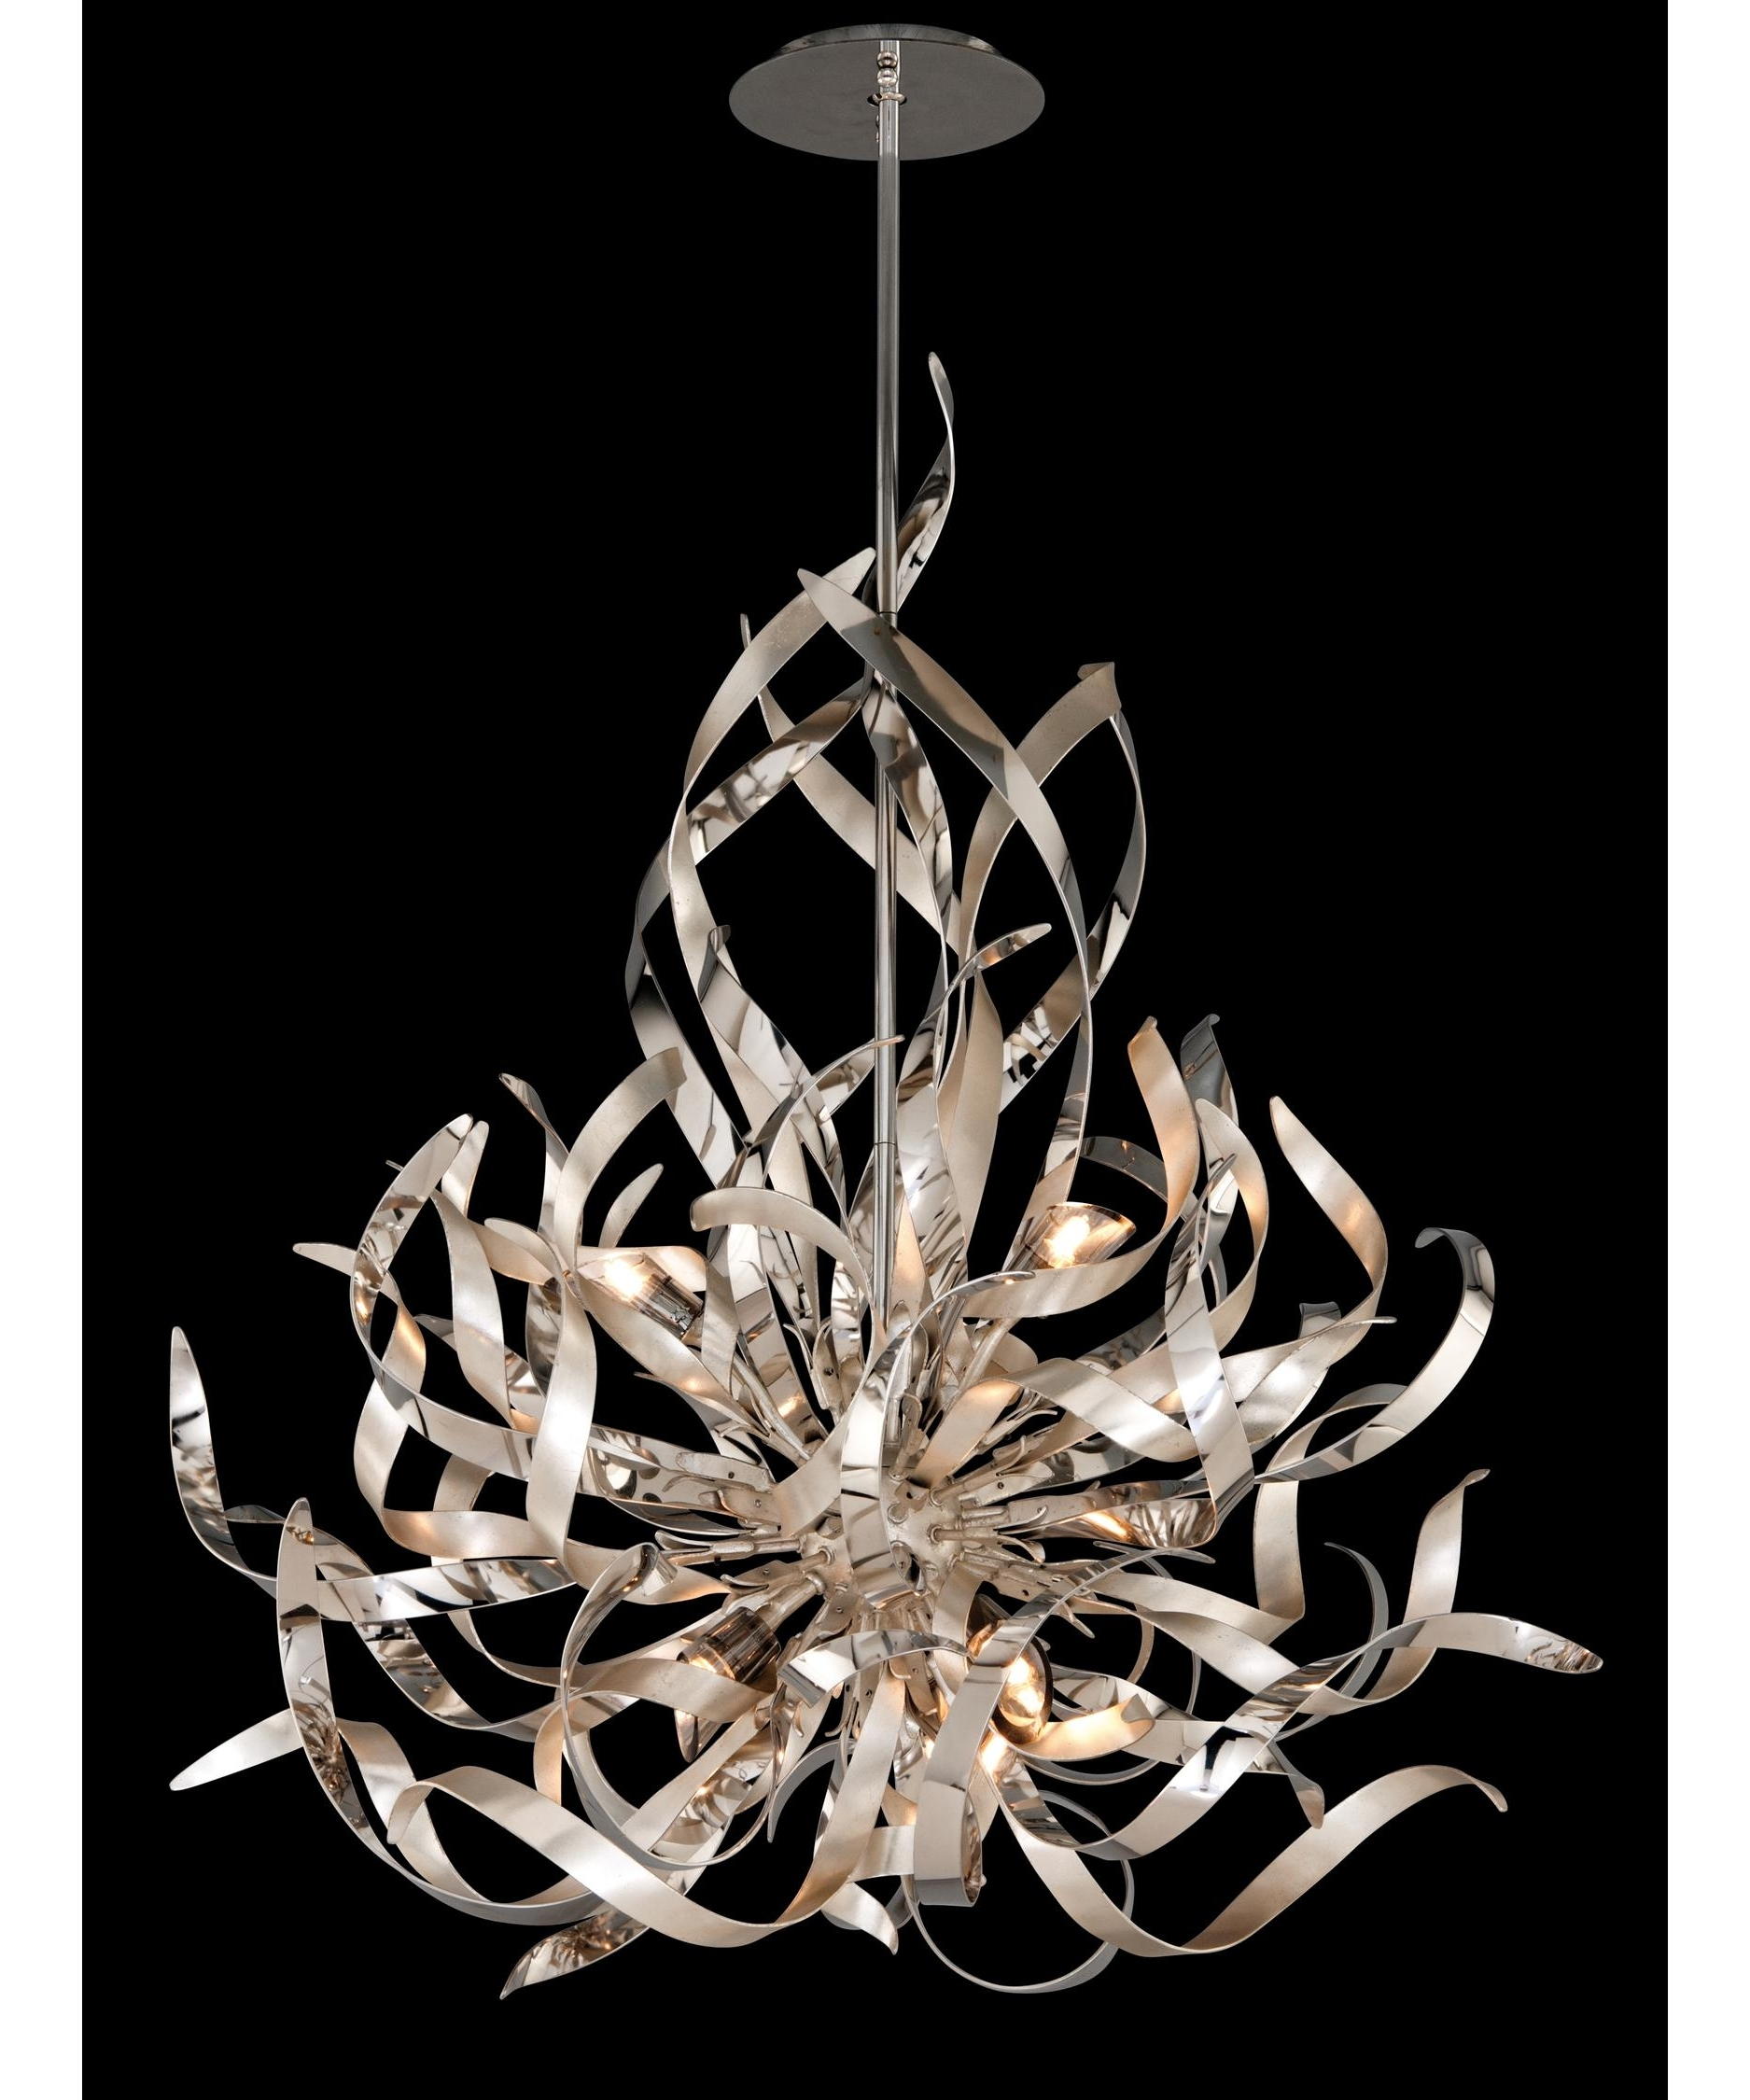 Newest Best Traditional Chandelier Lighting Lighting Lighting Chandelier Pertaining To Traditional Chandelier (View 2 of 15)